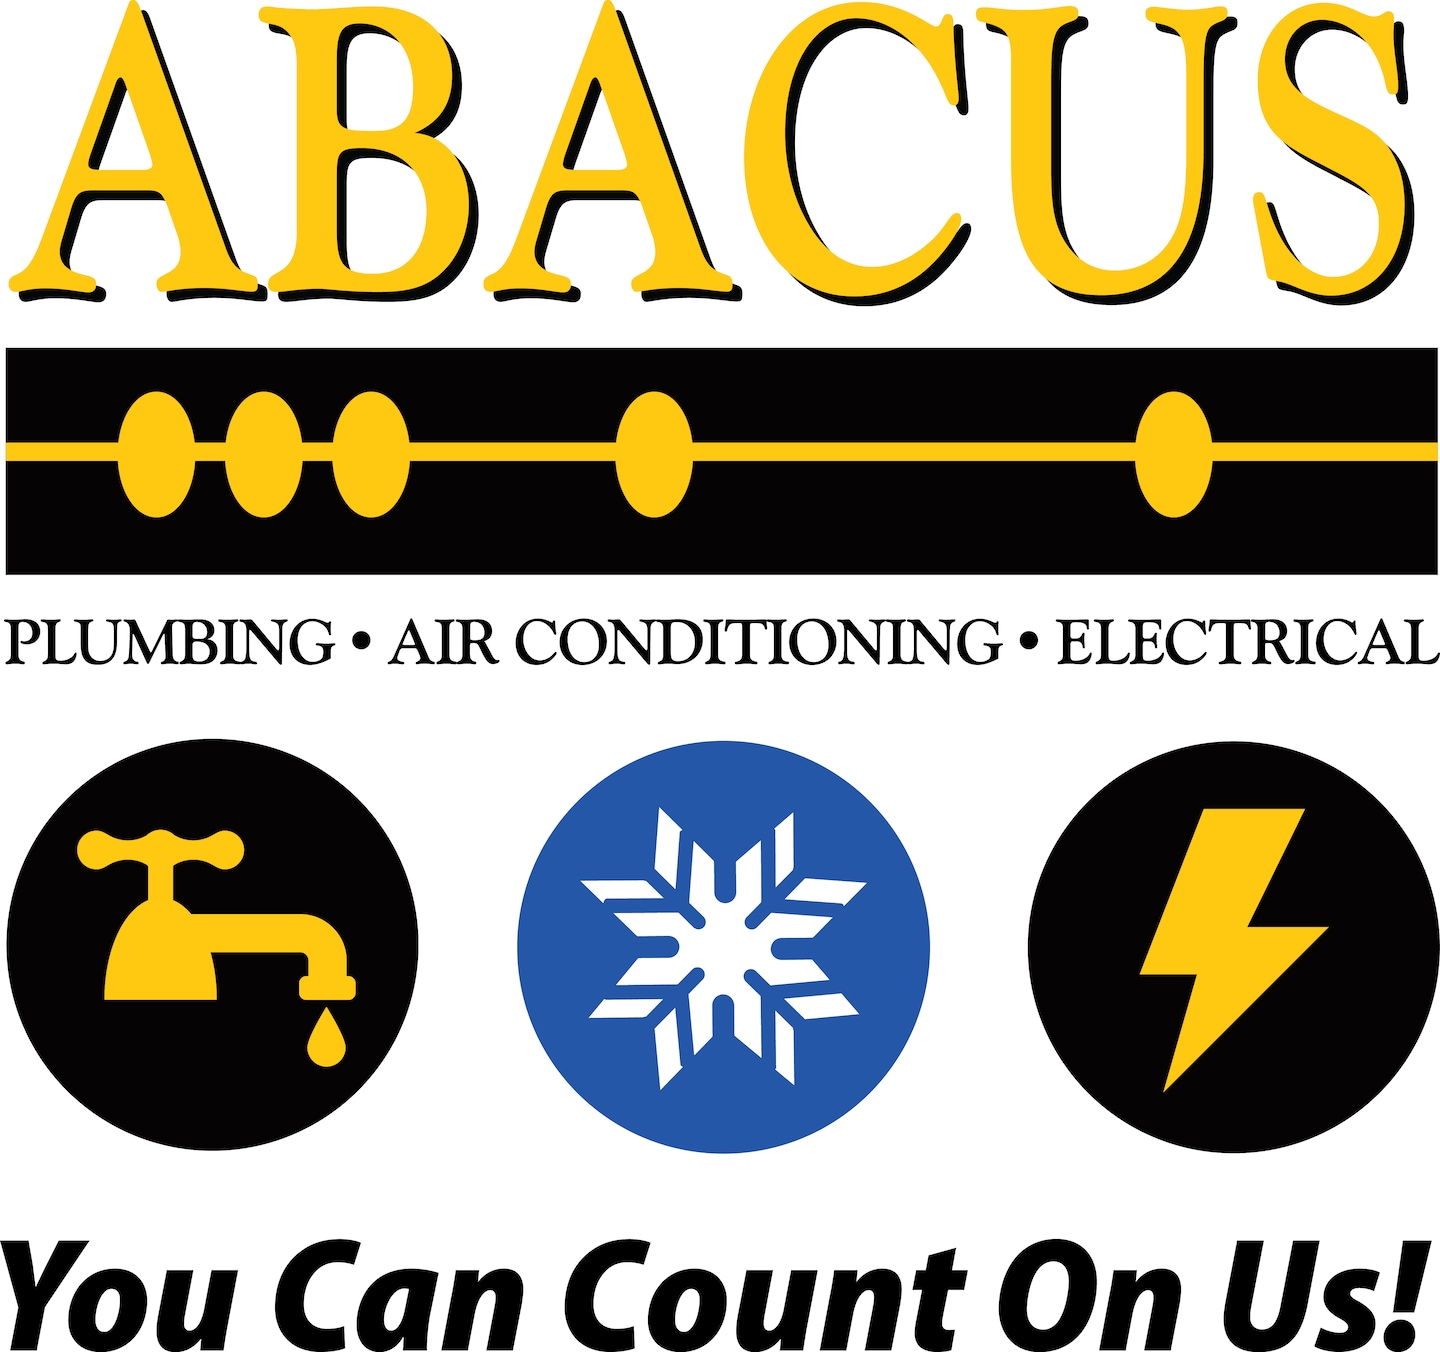 Abacus Plumbing Air Conditioning Electrical Reviews Houston